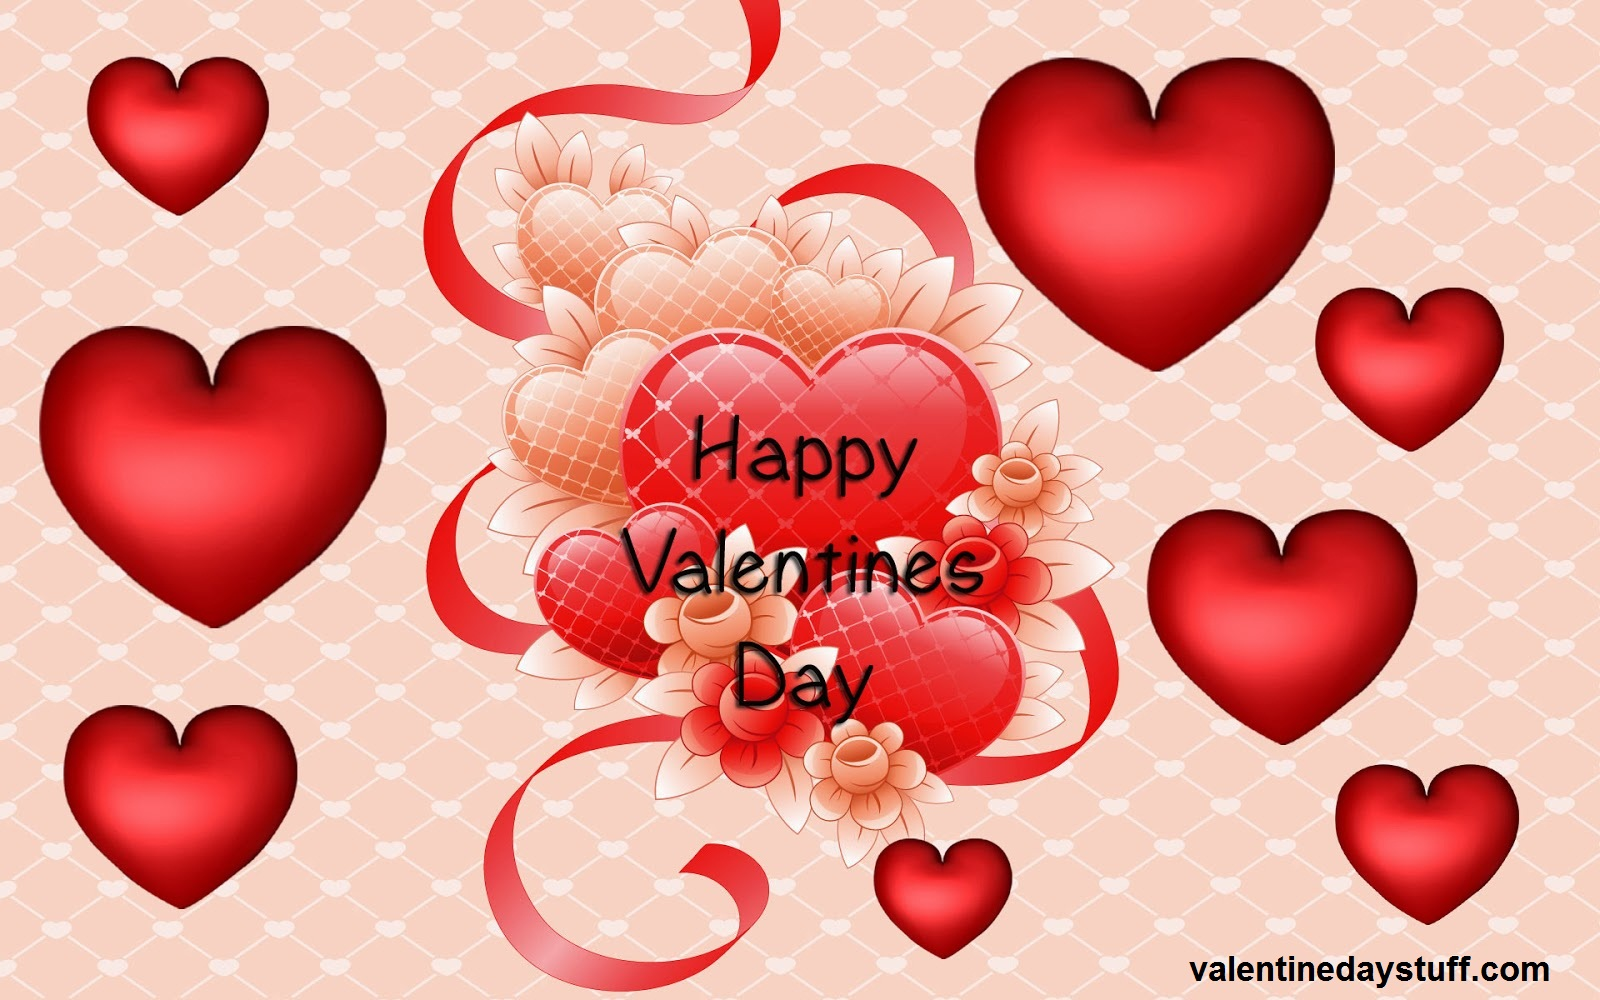 valentines day images free download.